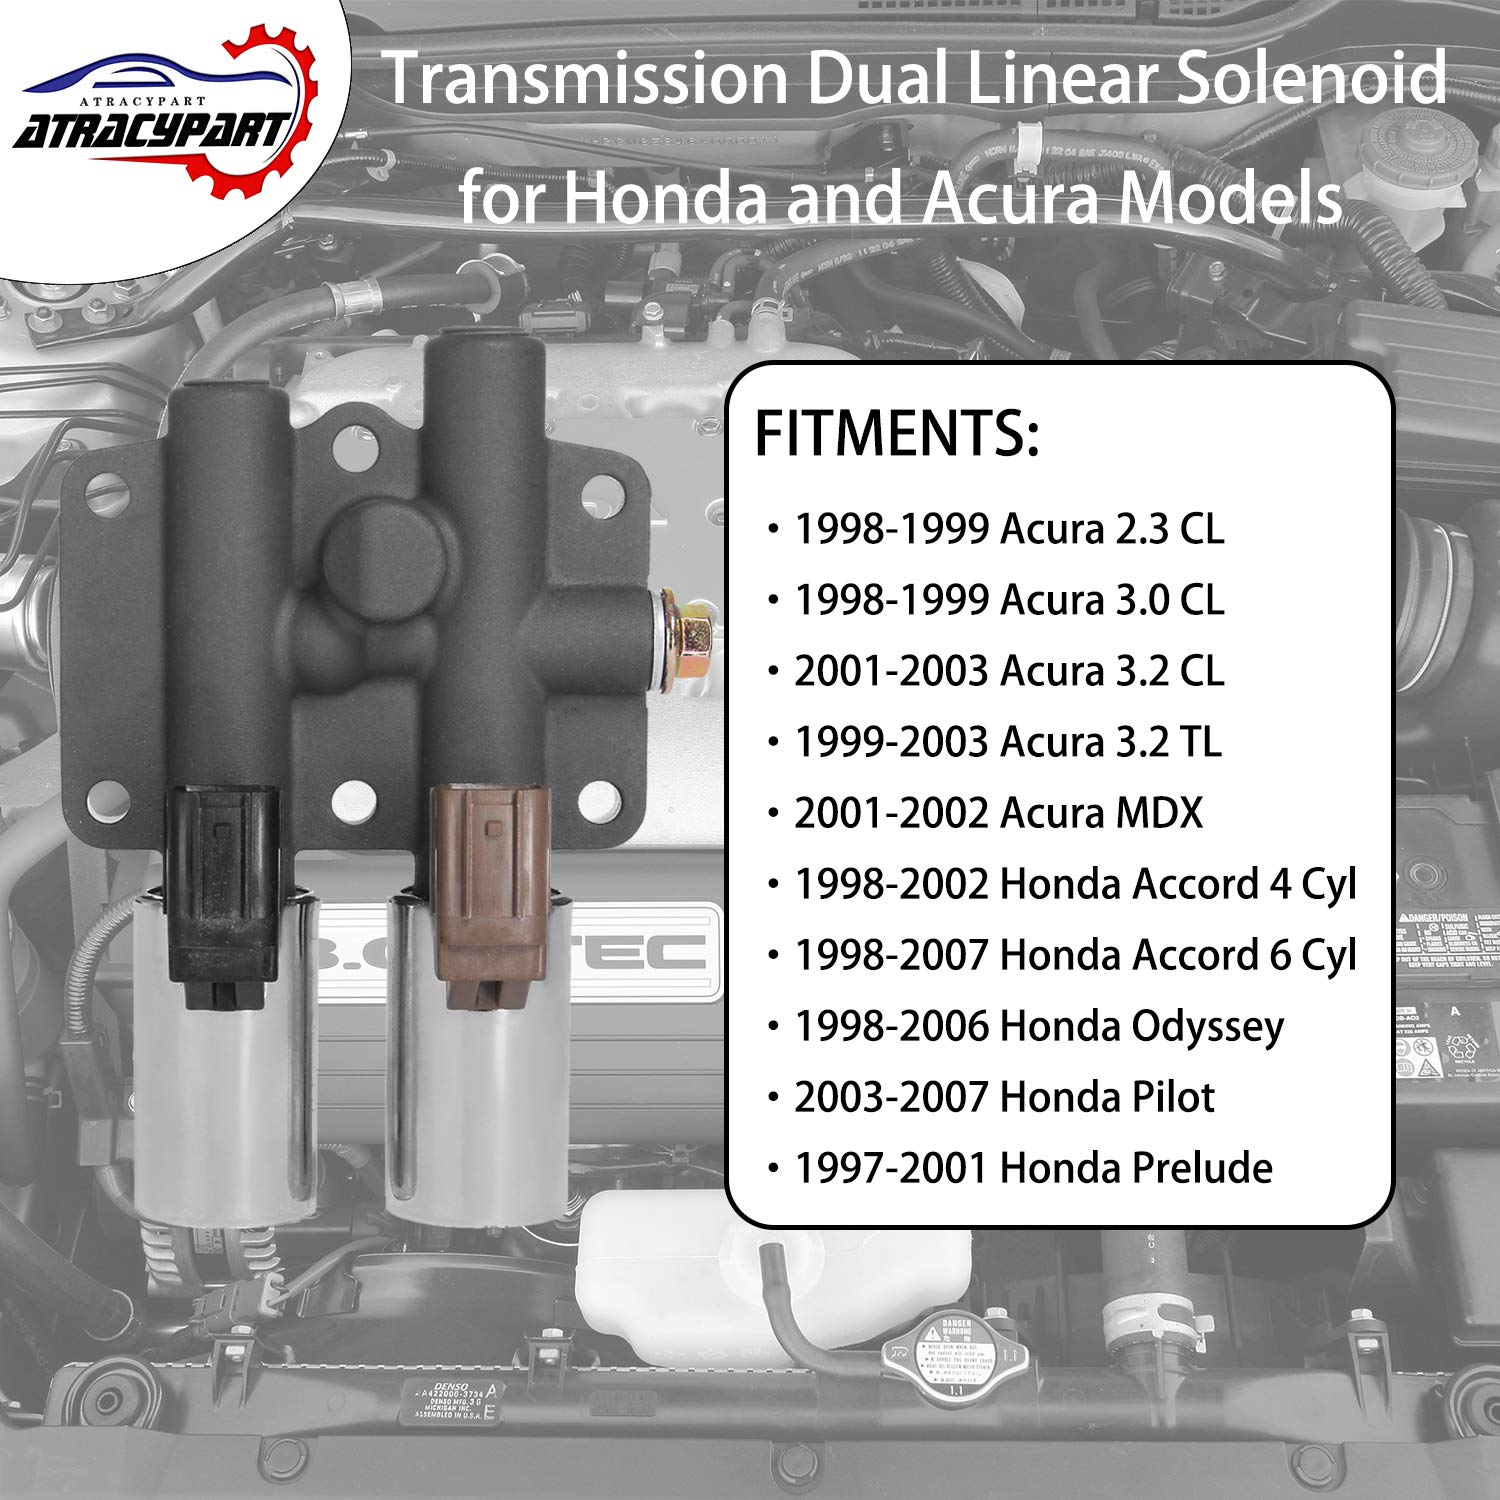 Transmission Dual Linear Solenoid With 1pcs Gasket And Acura Cl 3pcs O Rings For Honda Accord Odyssey Pilot Prelude Tl Mdx Replaces